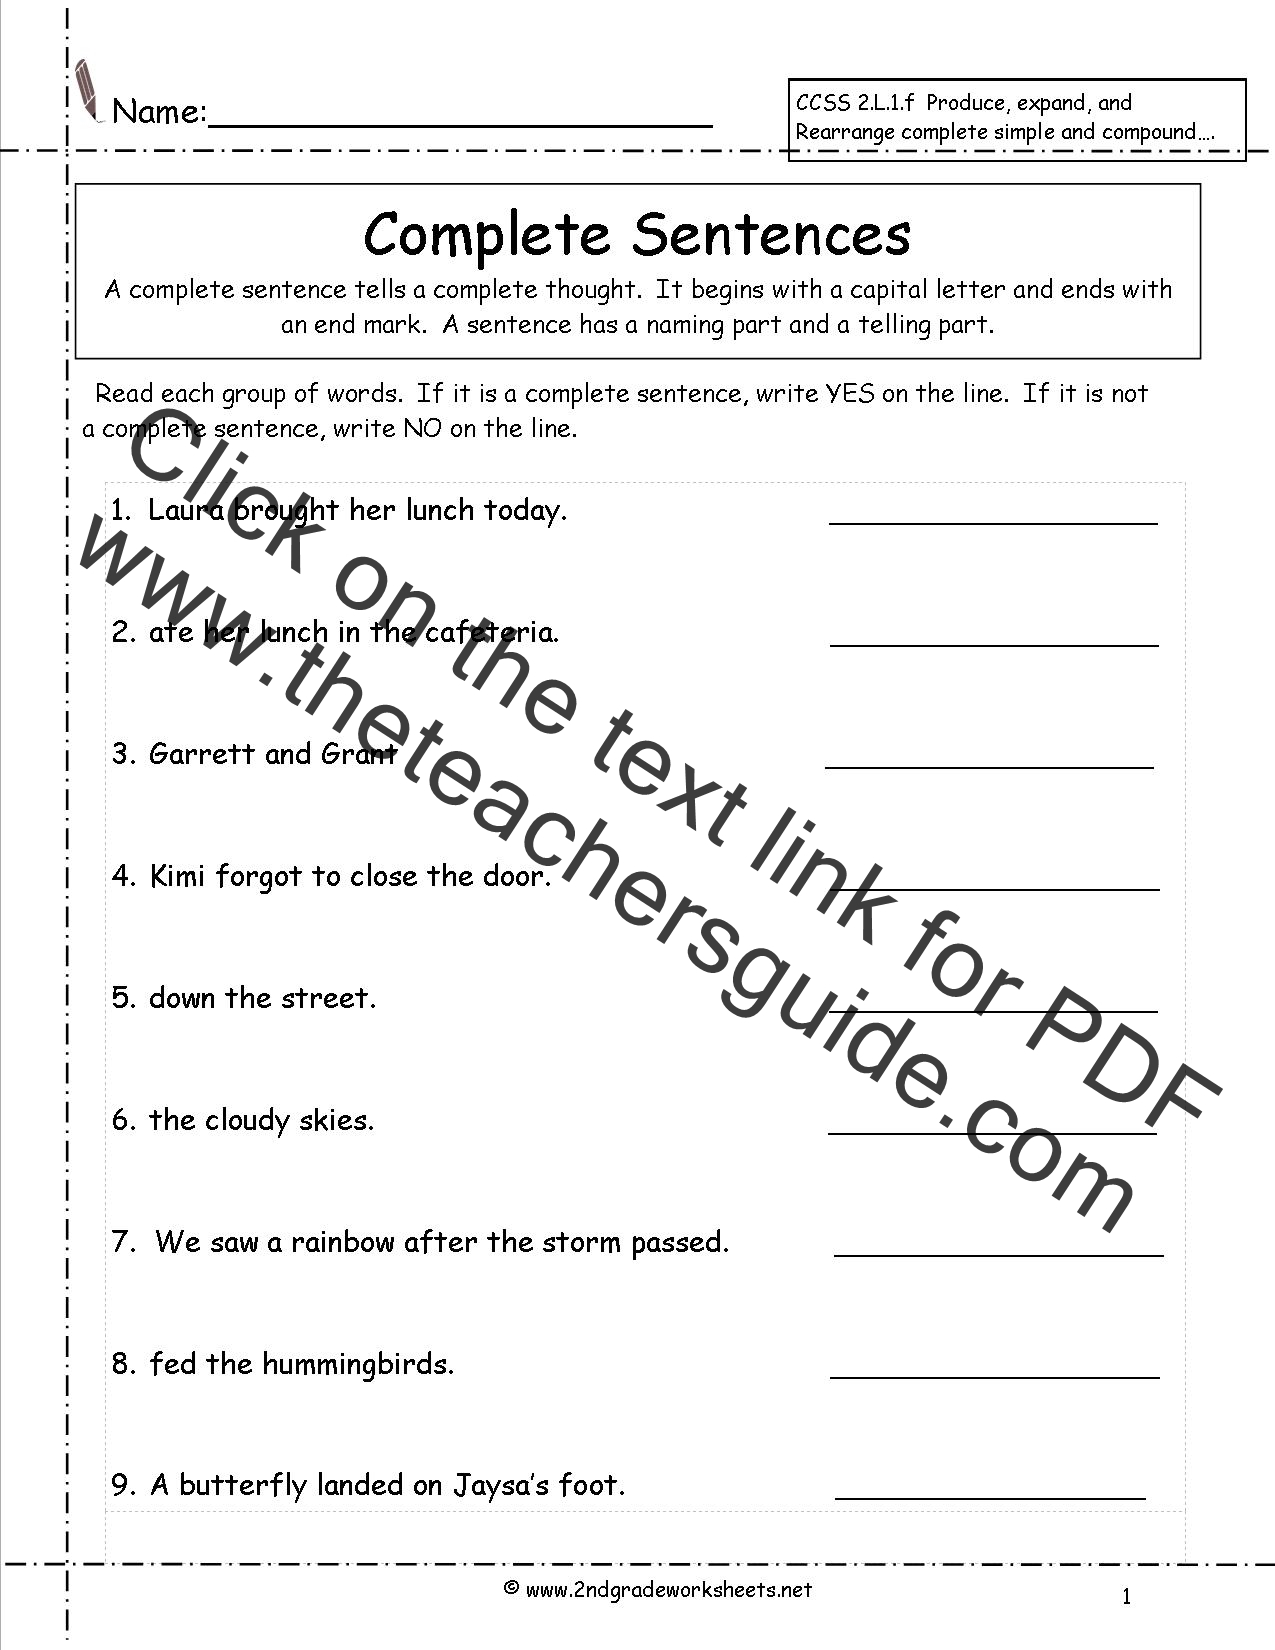 Second Grade Sentences Worksheets CCSS 2L1f Worksheets – Writing Sentences Worksheets